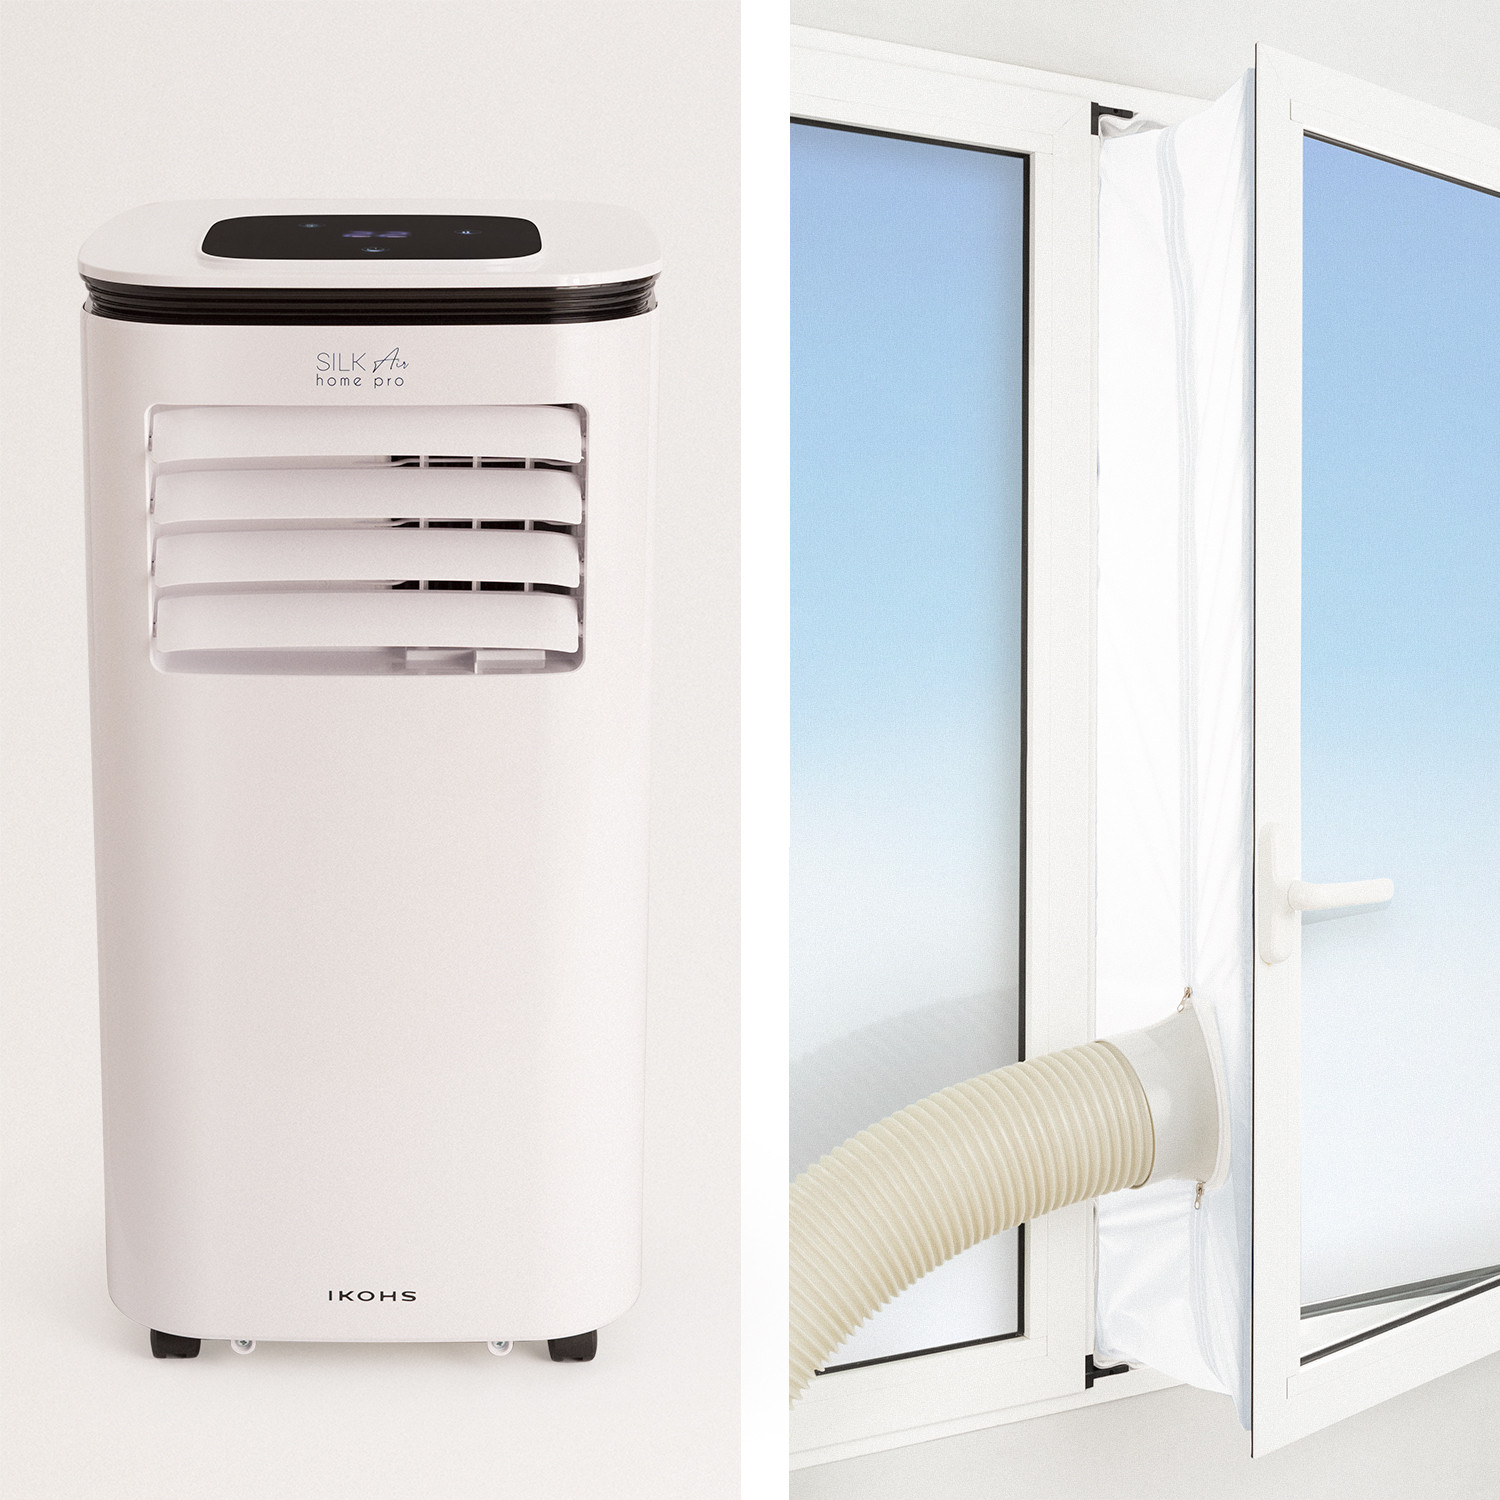 PACK - SILKAIR HOME PRO Portable Air Conditioner 4in1 + EXTRACTION AND INSULATION KIT for casement windows, imagen de galería 1